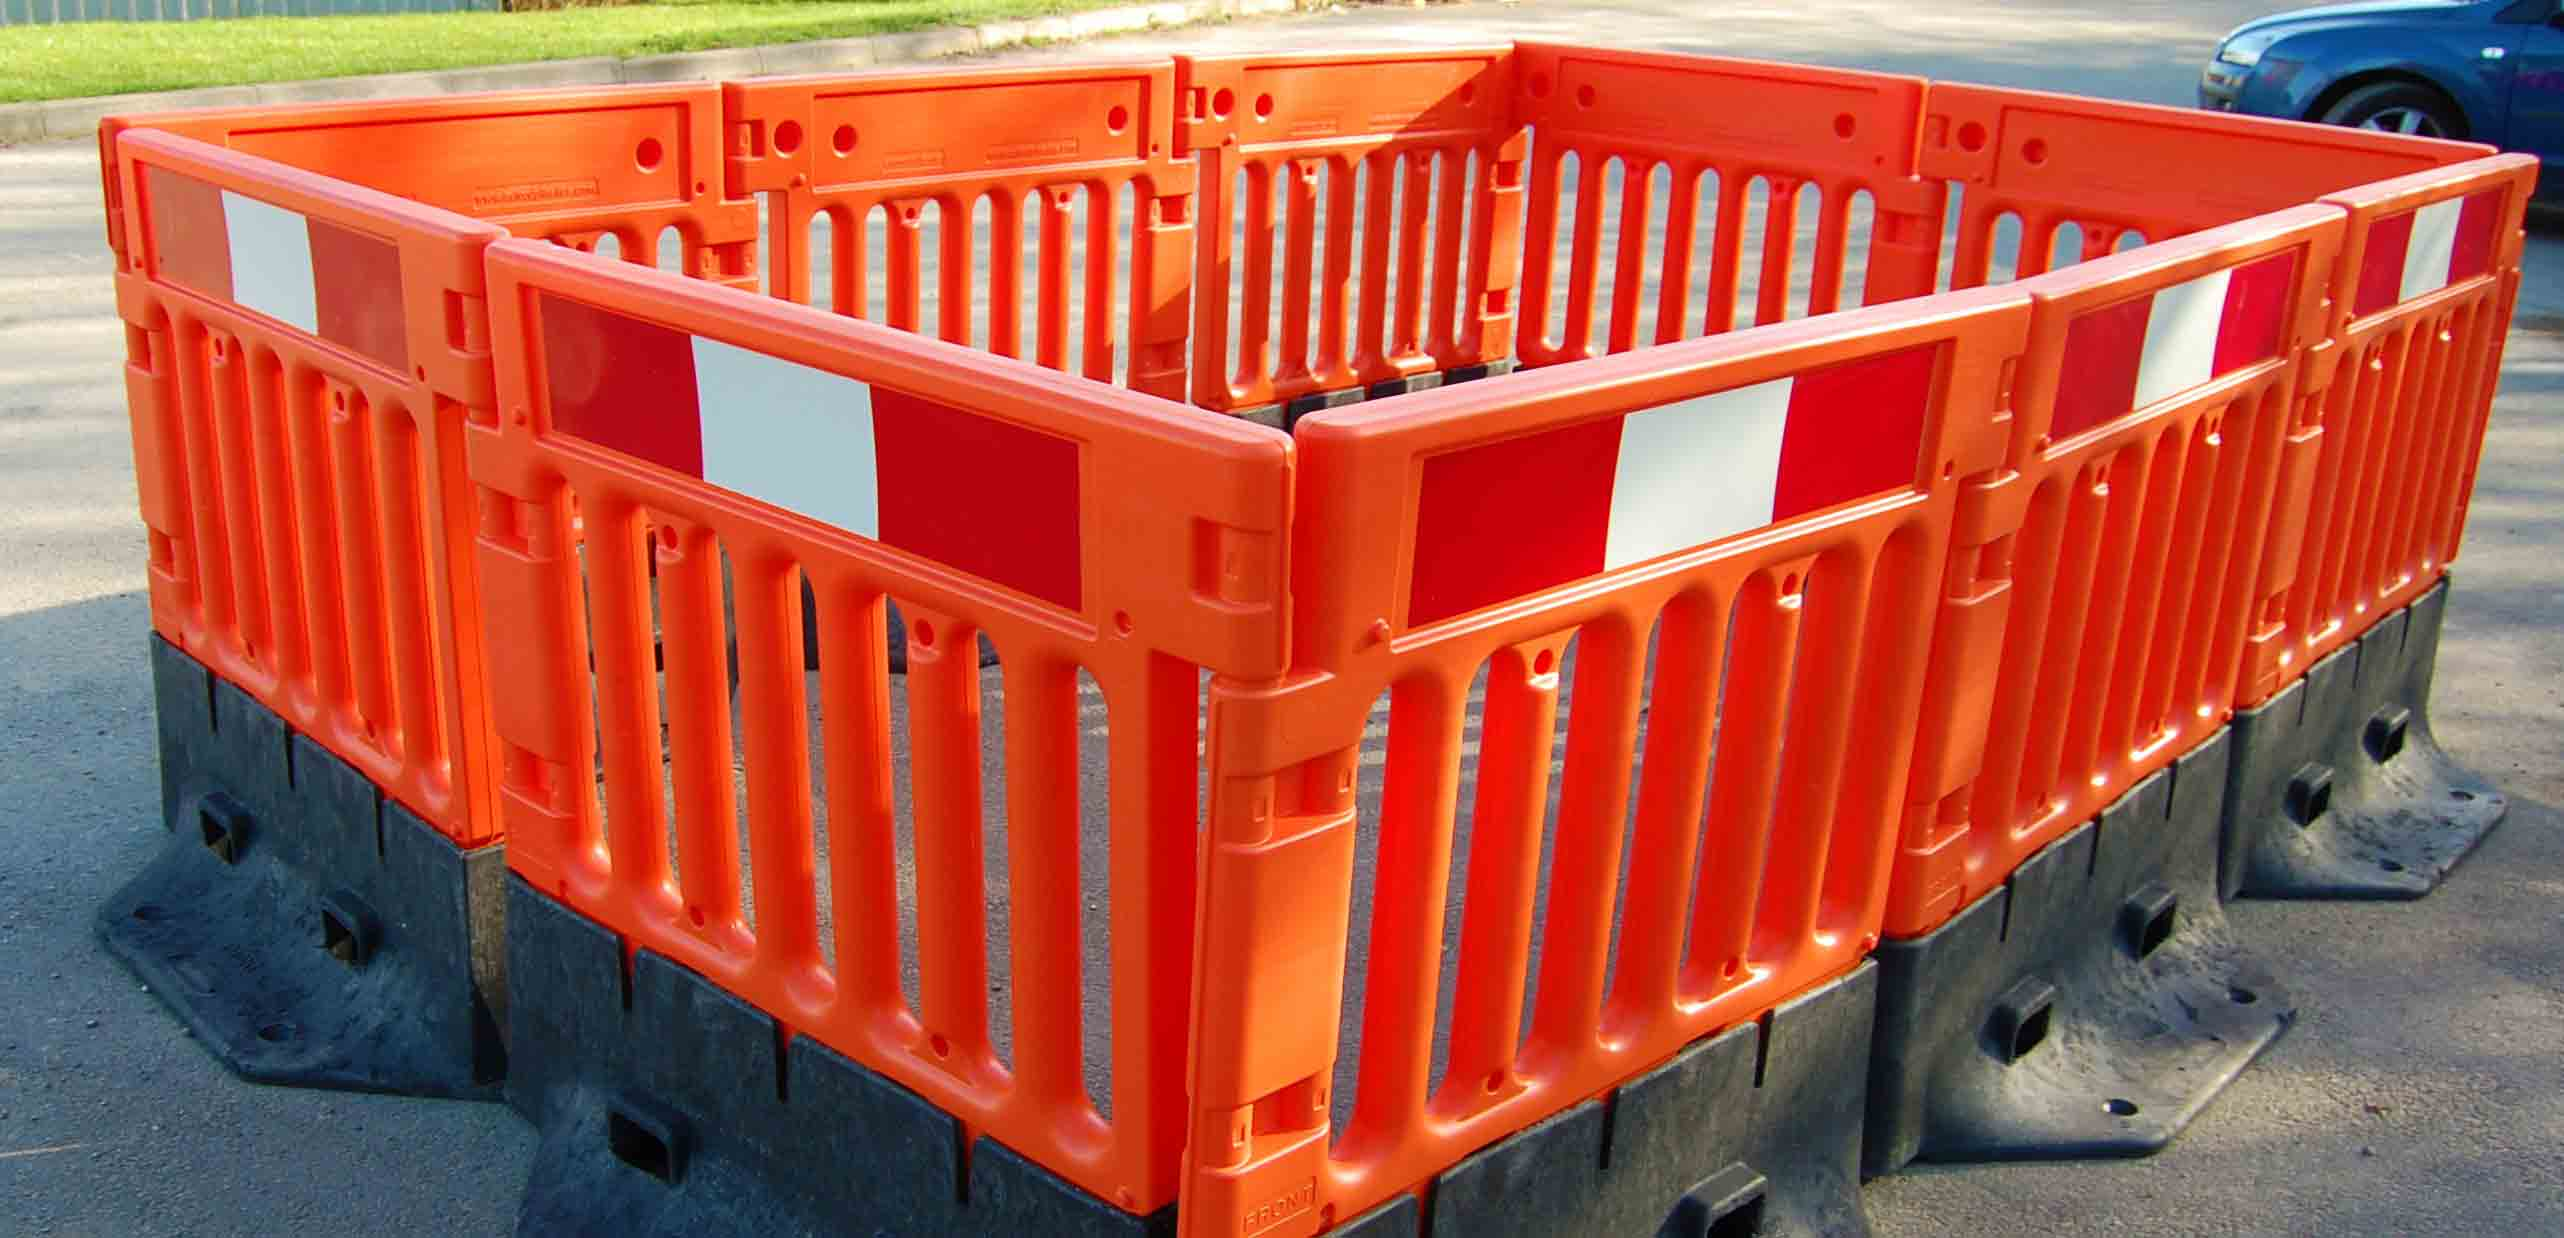 StrongWall Heavy-Duty Barrier